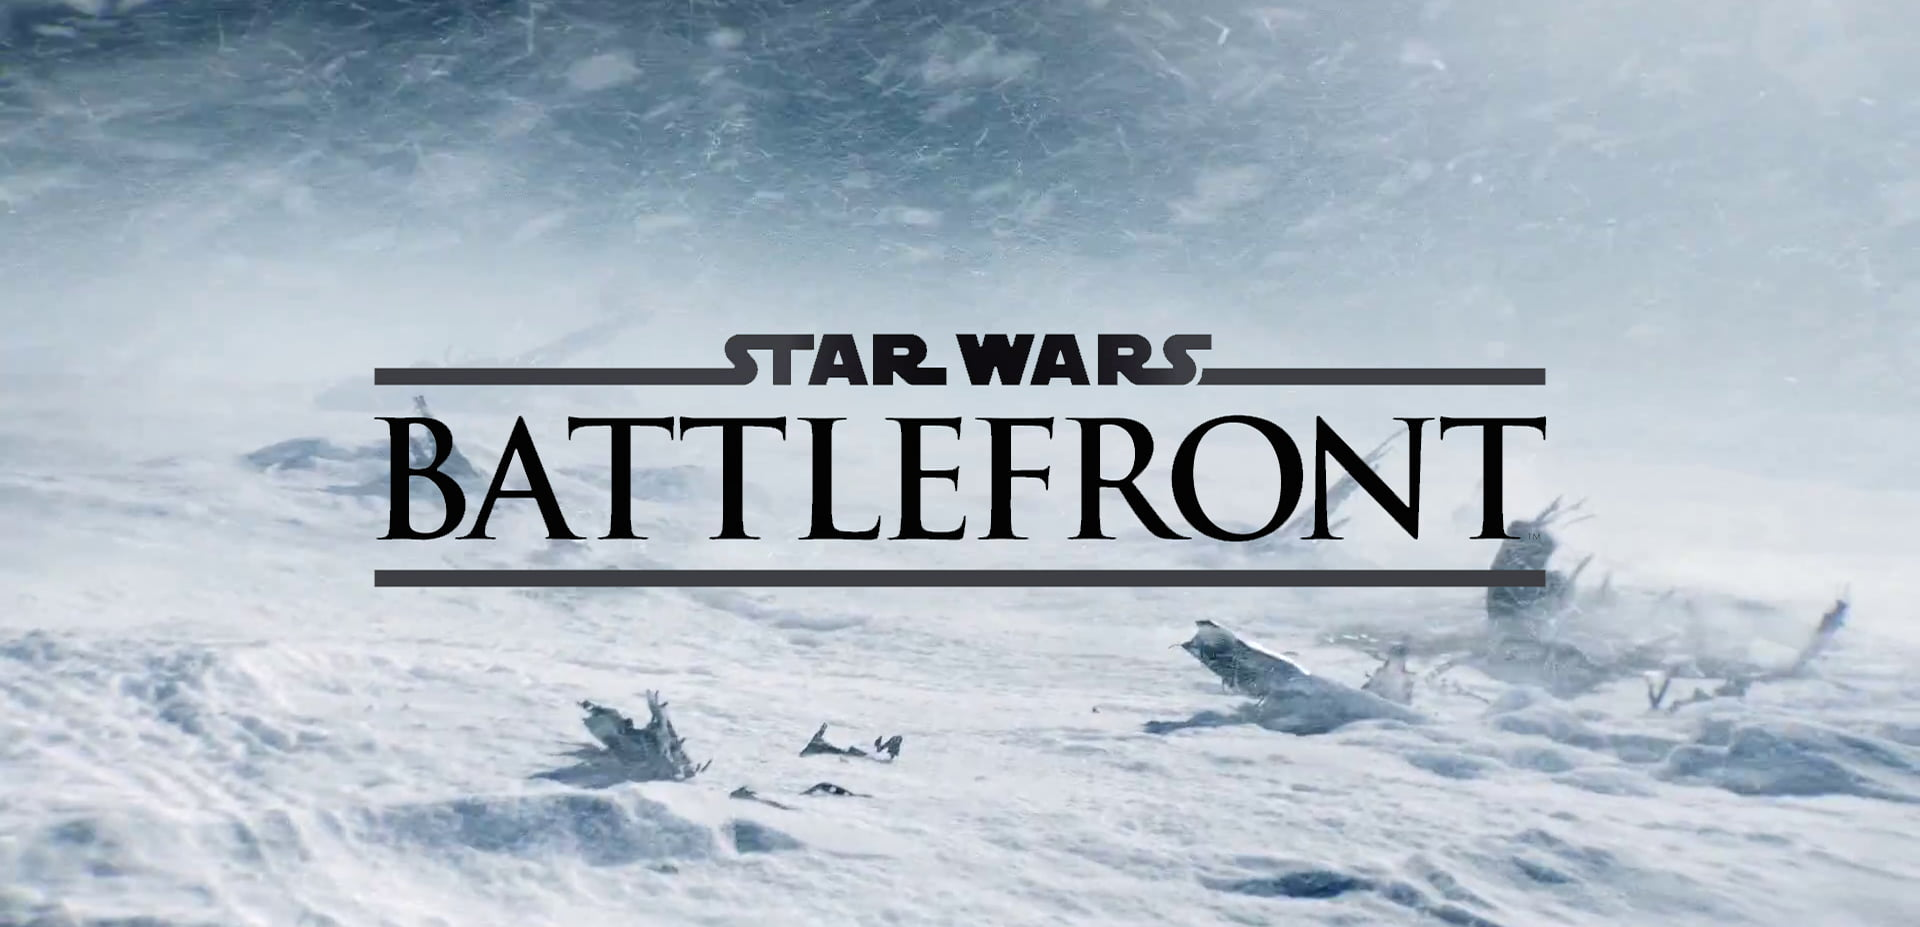 Star Wars Battleforn dice